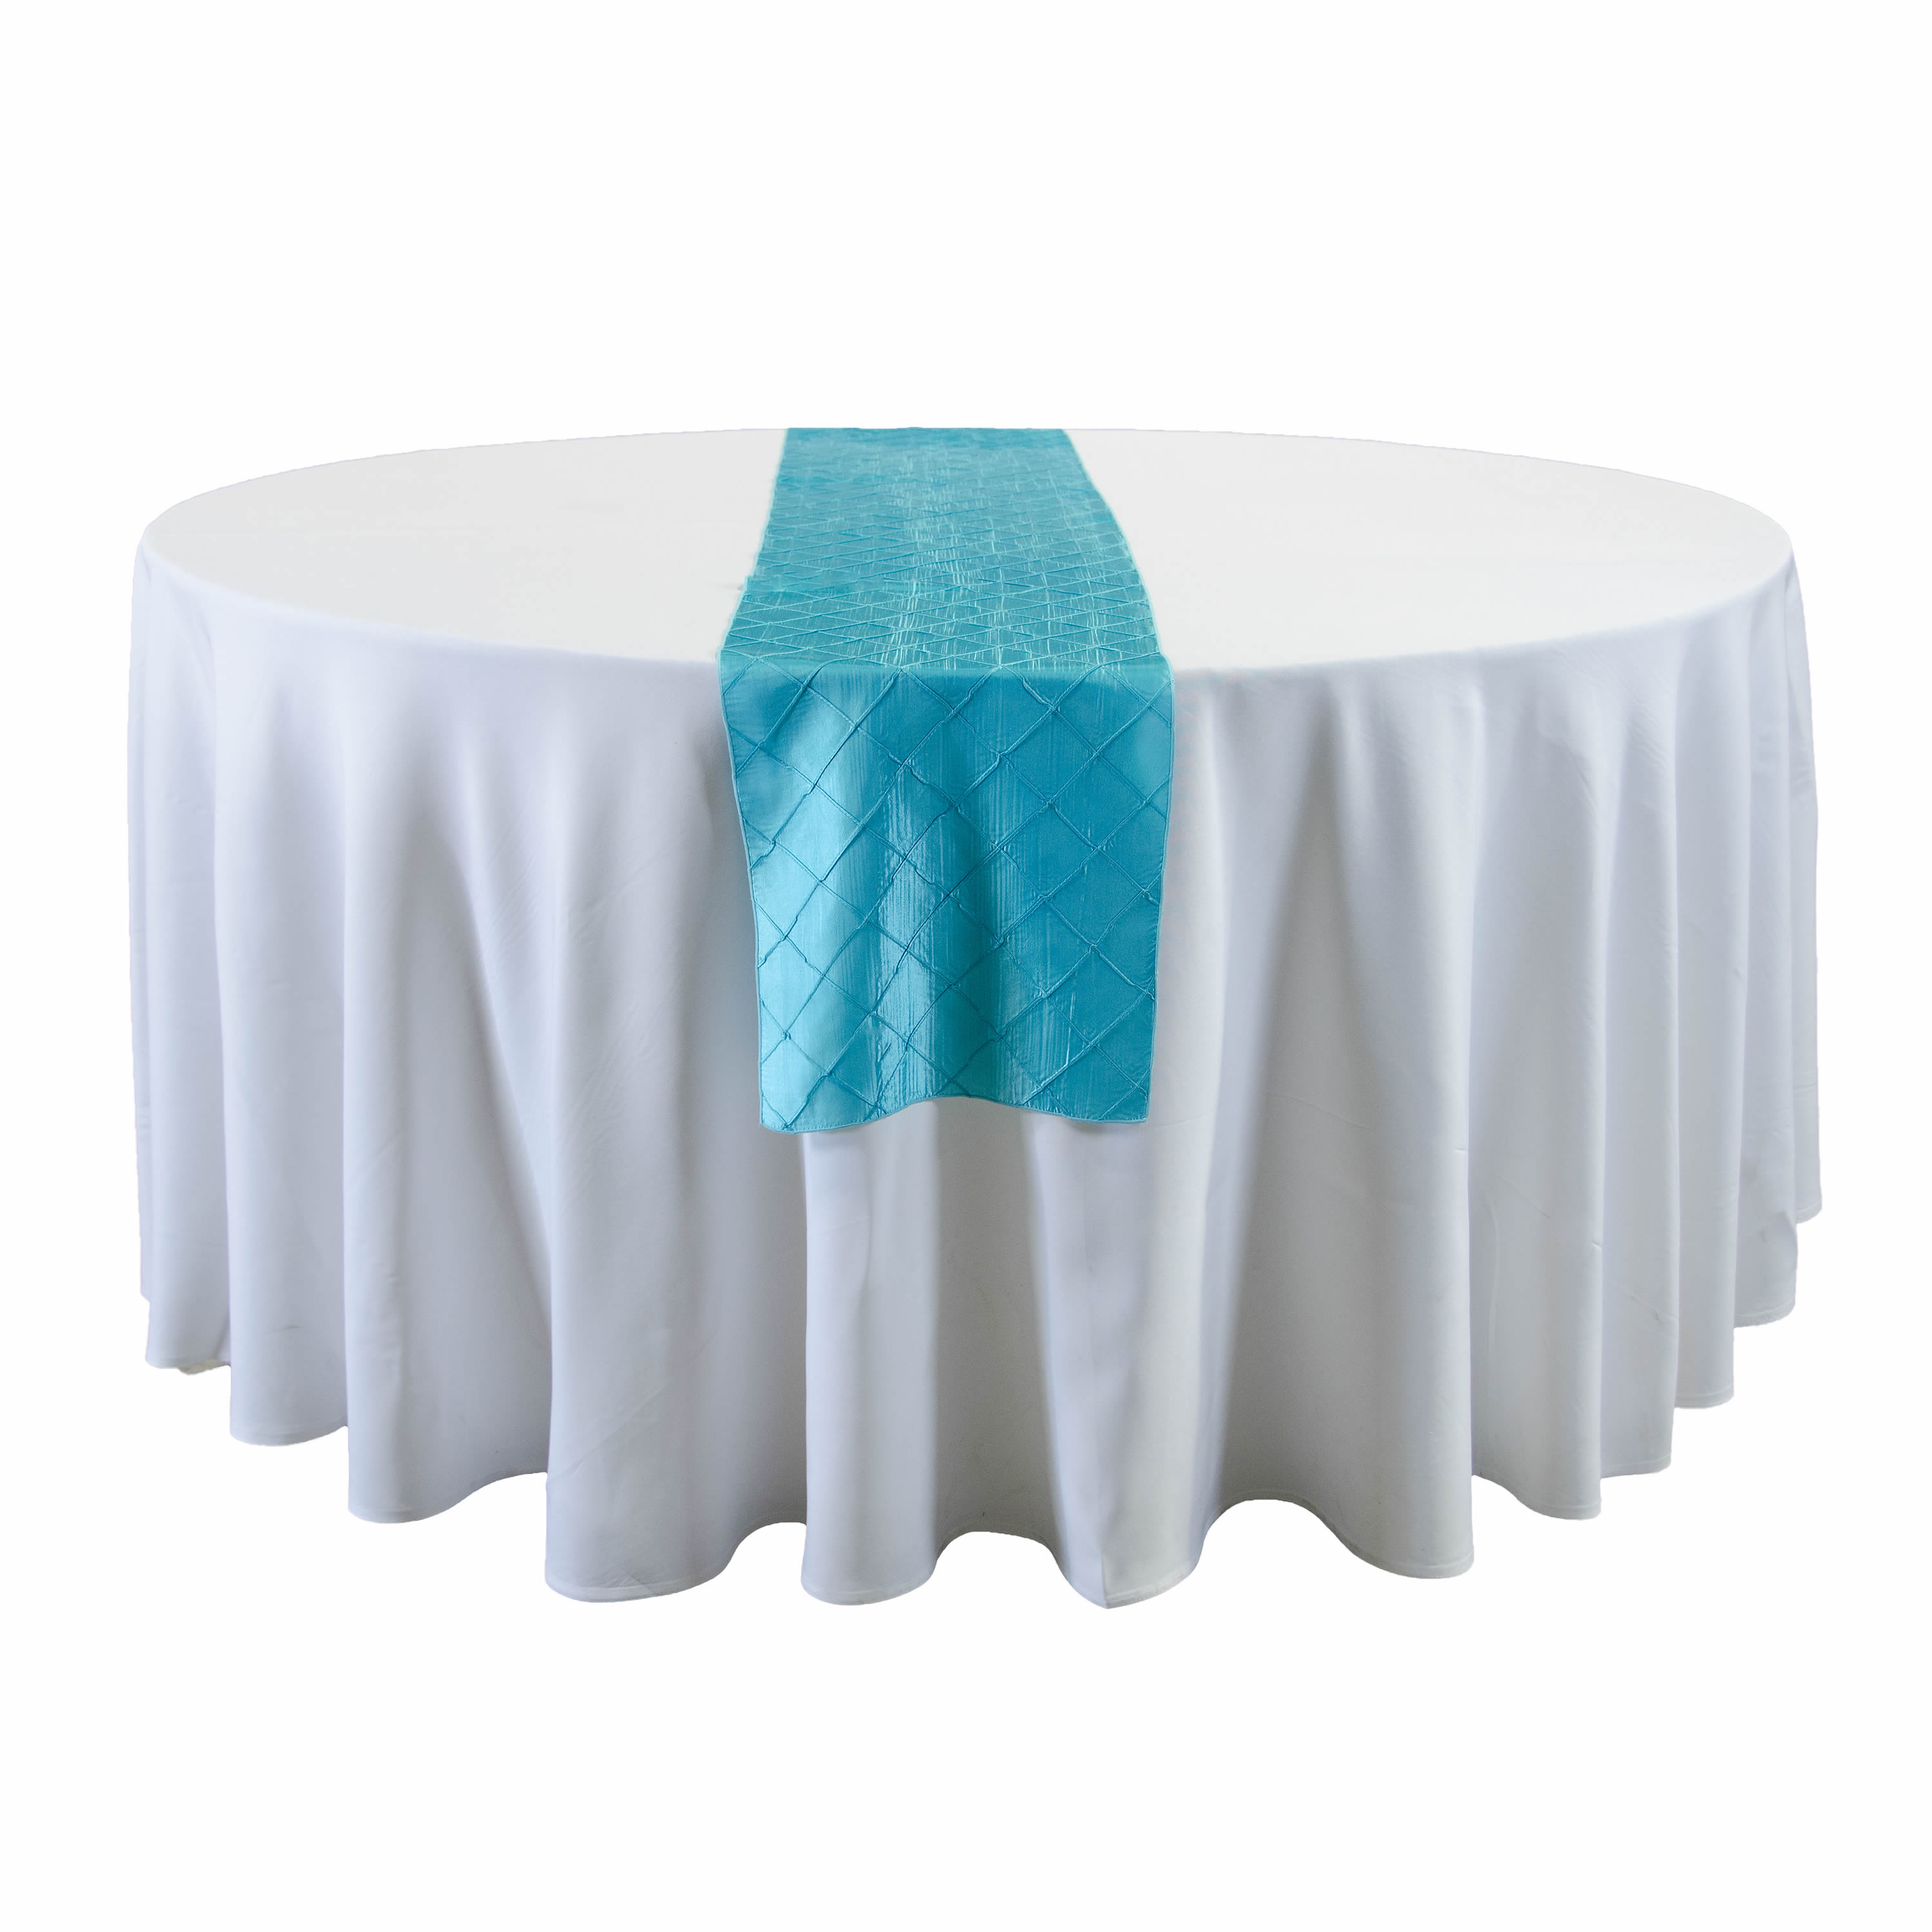 Turquoise Blue Satin Table Runners